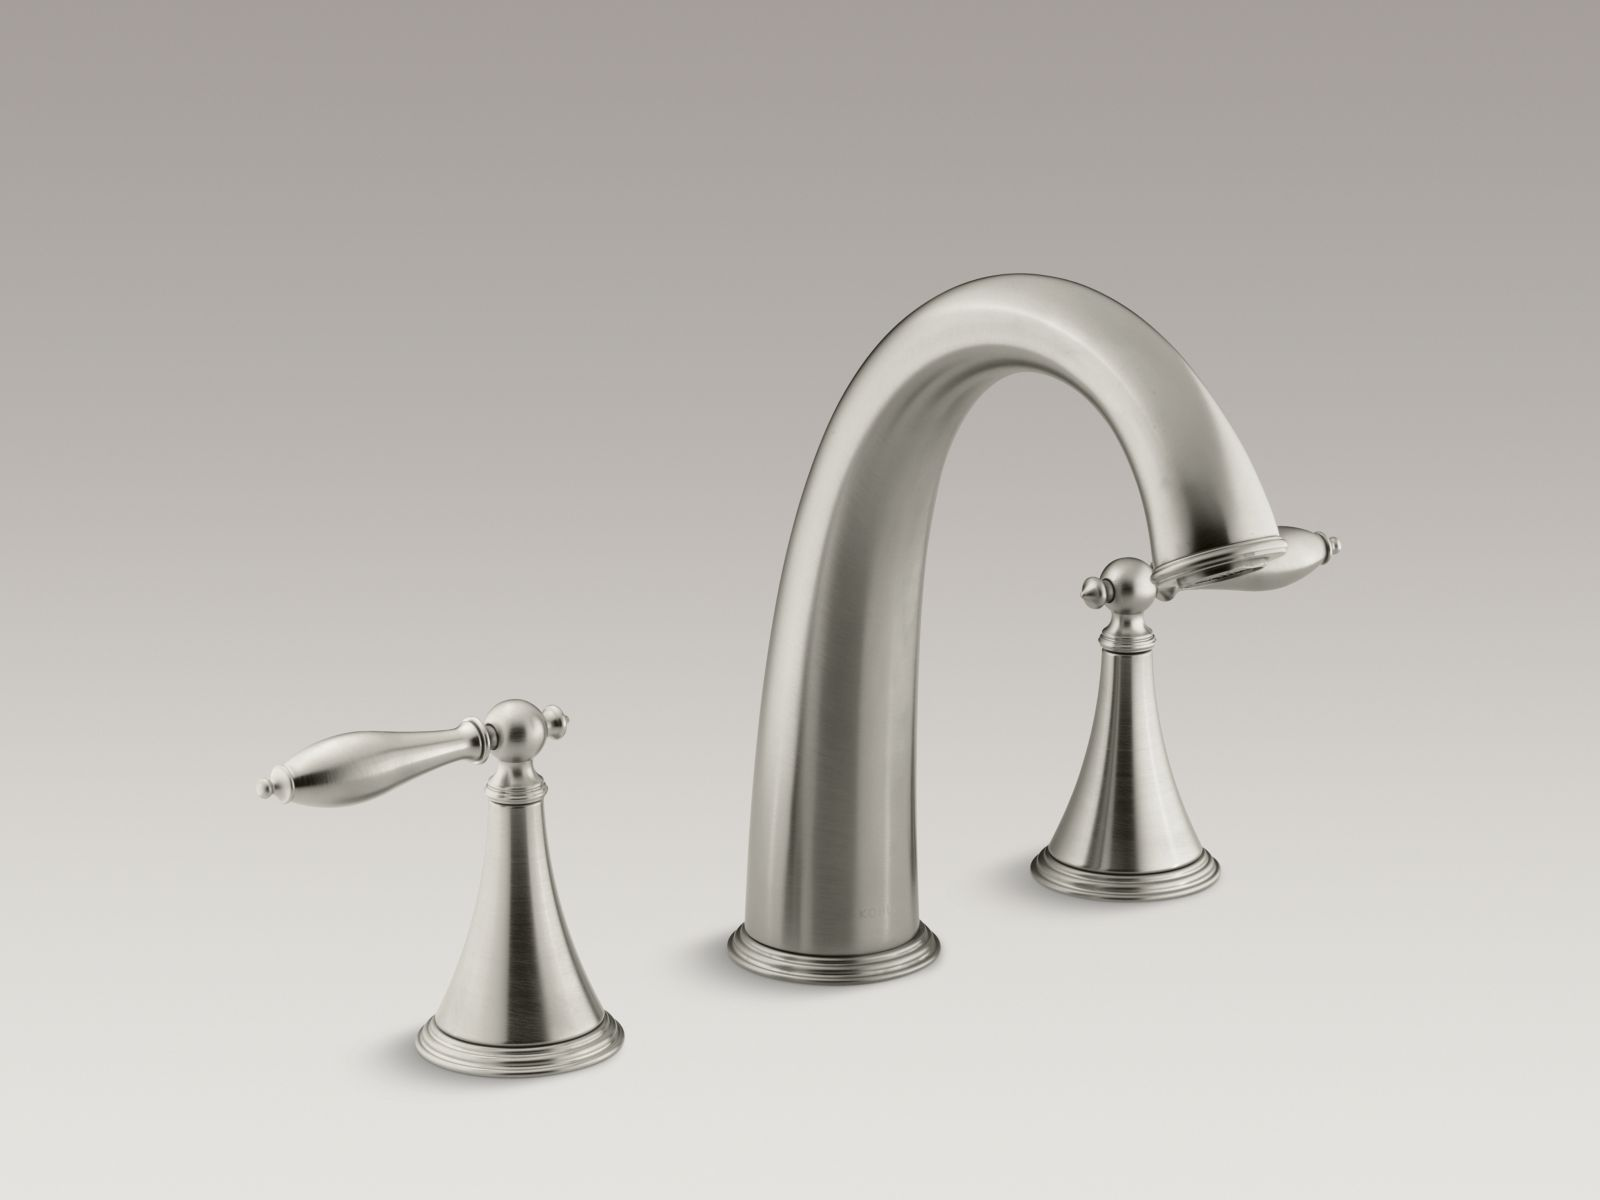 Kohler Finial® Traditional K-T314-4M-BN Deck-mount bath faucet trim for high-flow valve with lever handles, valve not included Vibrant Brushed Nickel